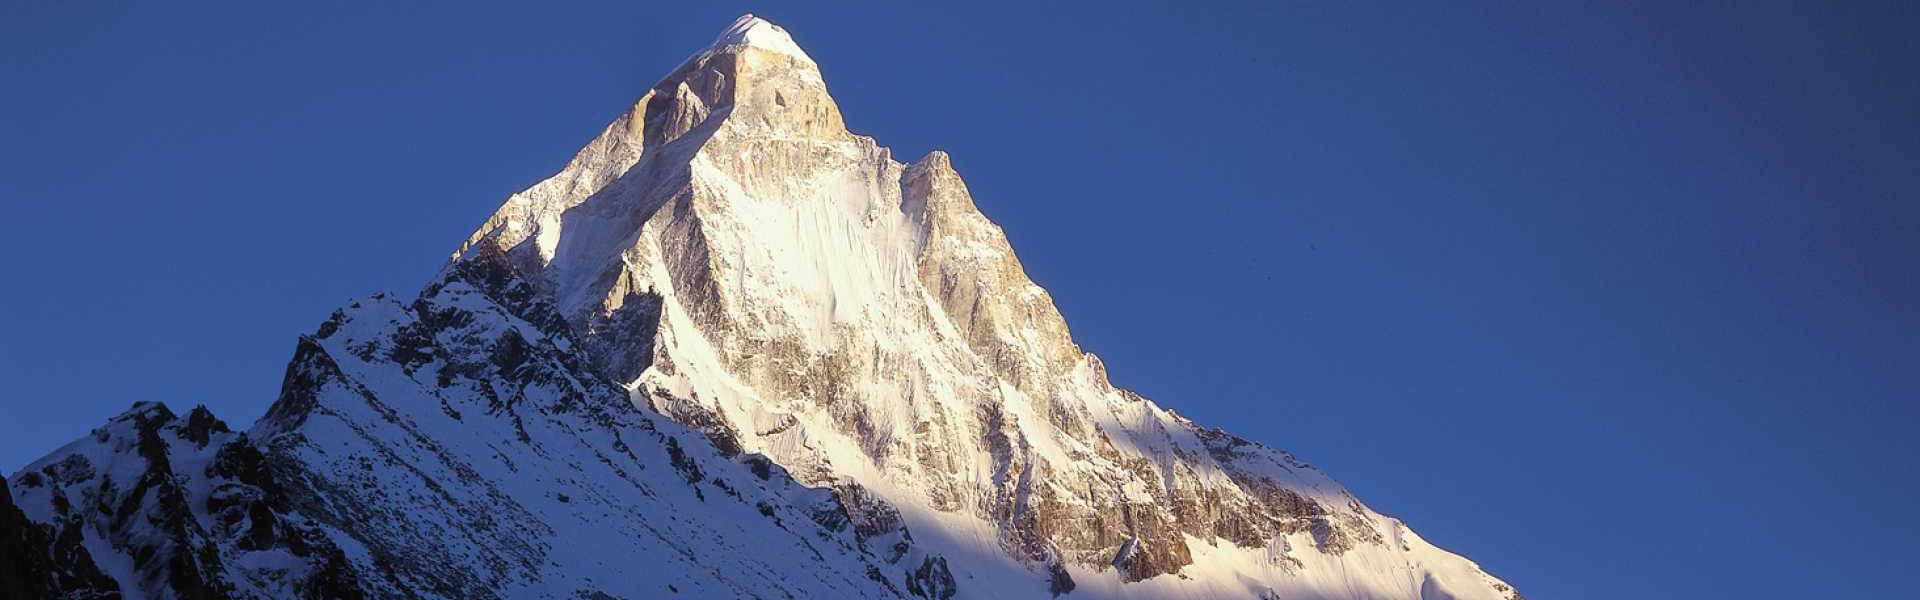 Himalayan Adventure, adventure tour, himalayan tour, trip to india,